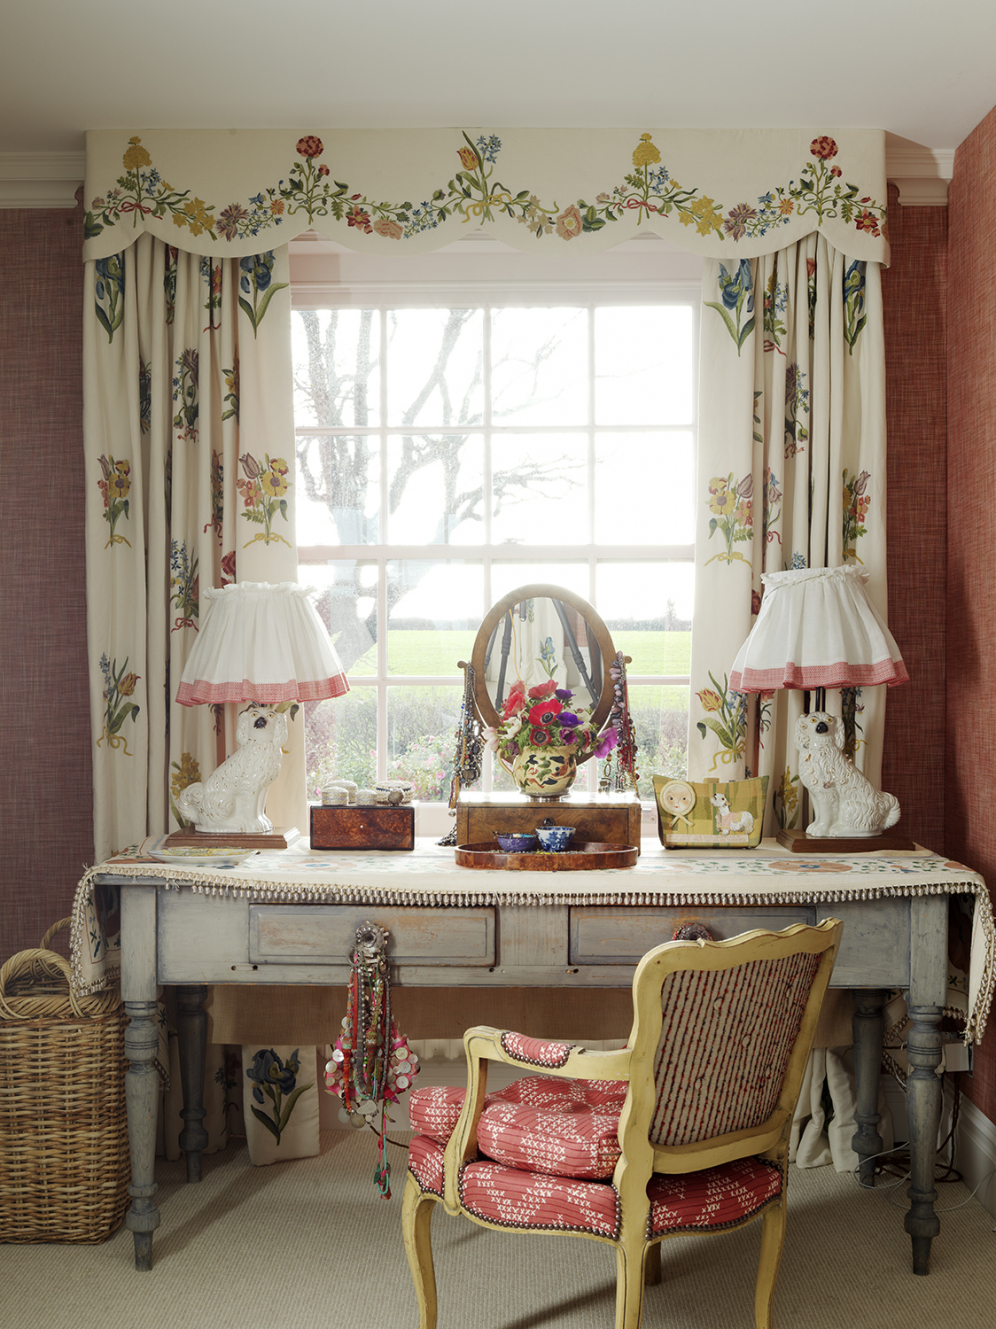 Kit Kemp Country Home